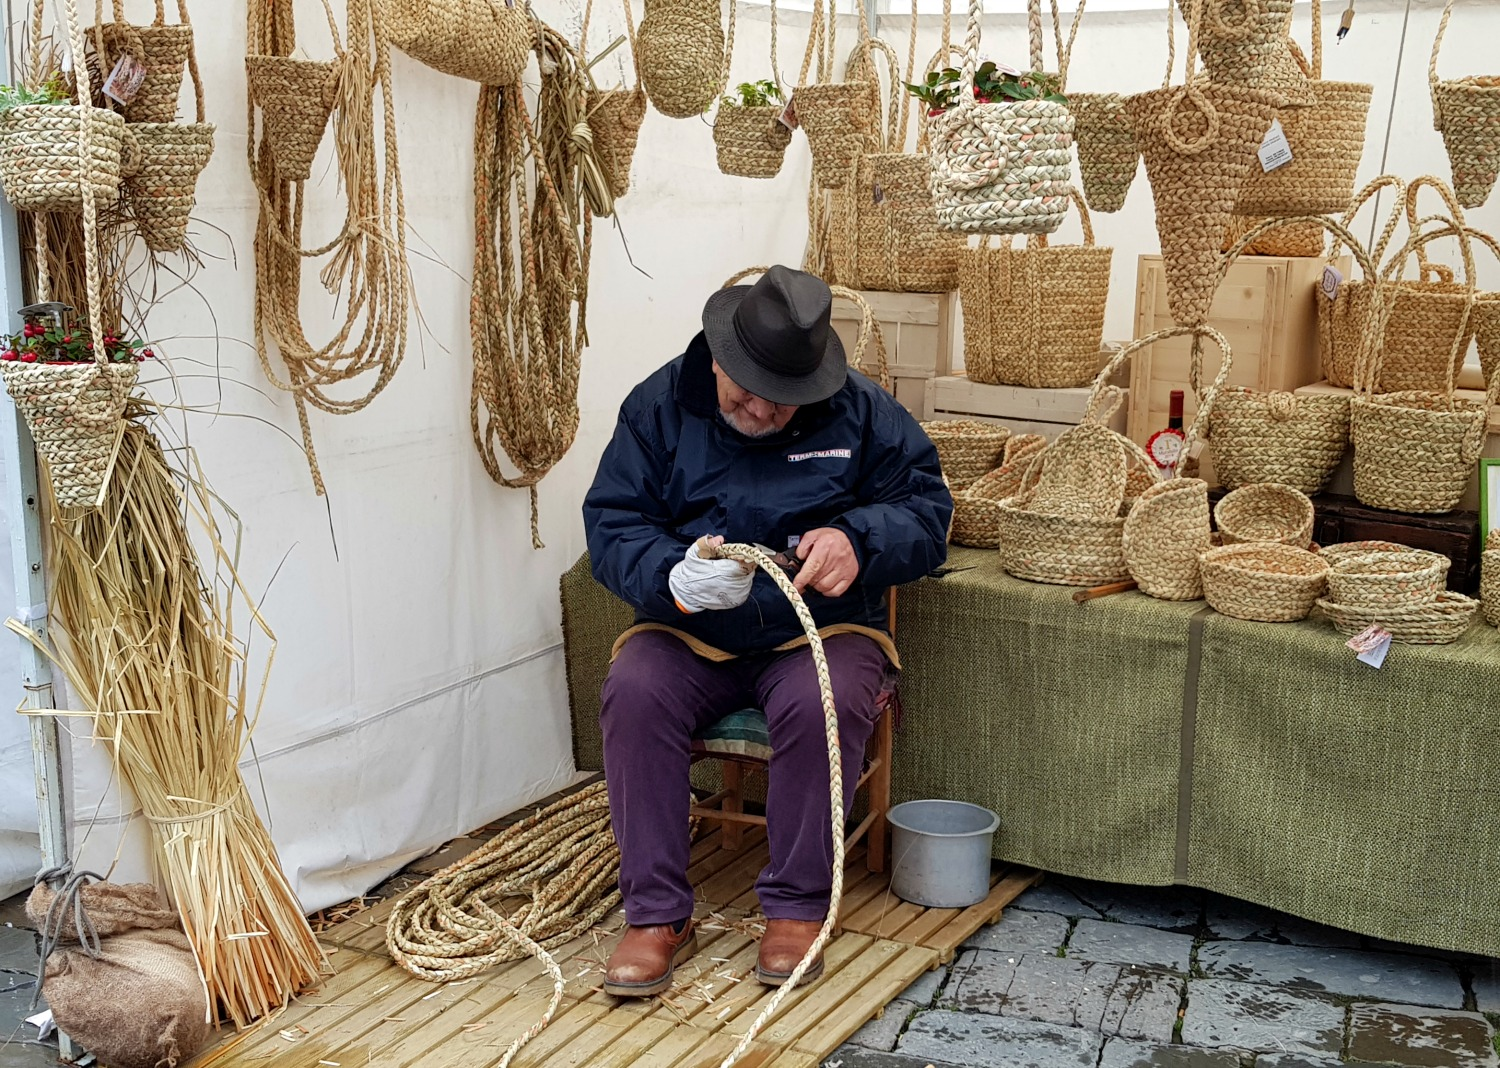 Man weaving from straw at at farmer's market in Florence, italy - my Uffizi tour with kids and gelato making day in Florence